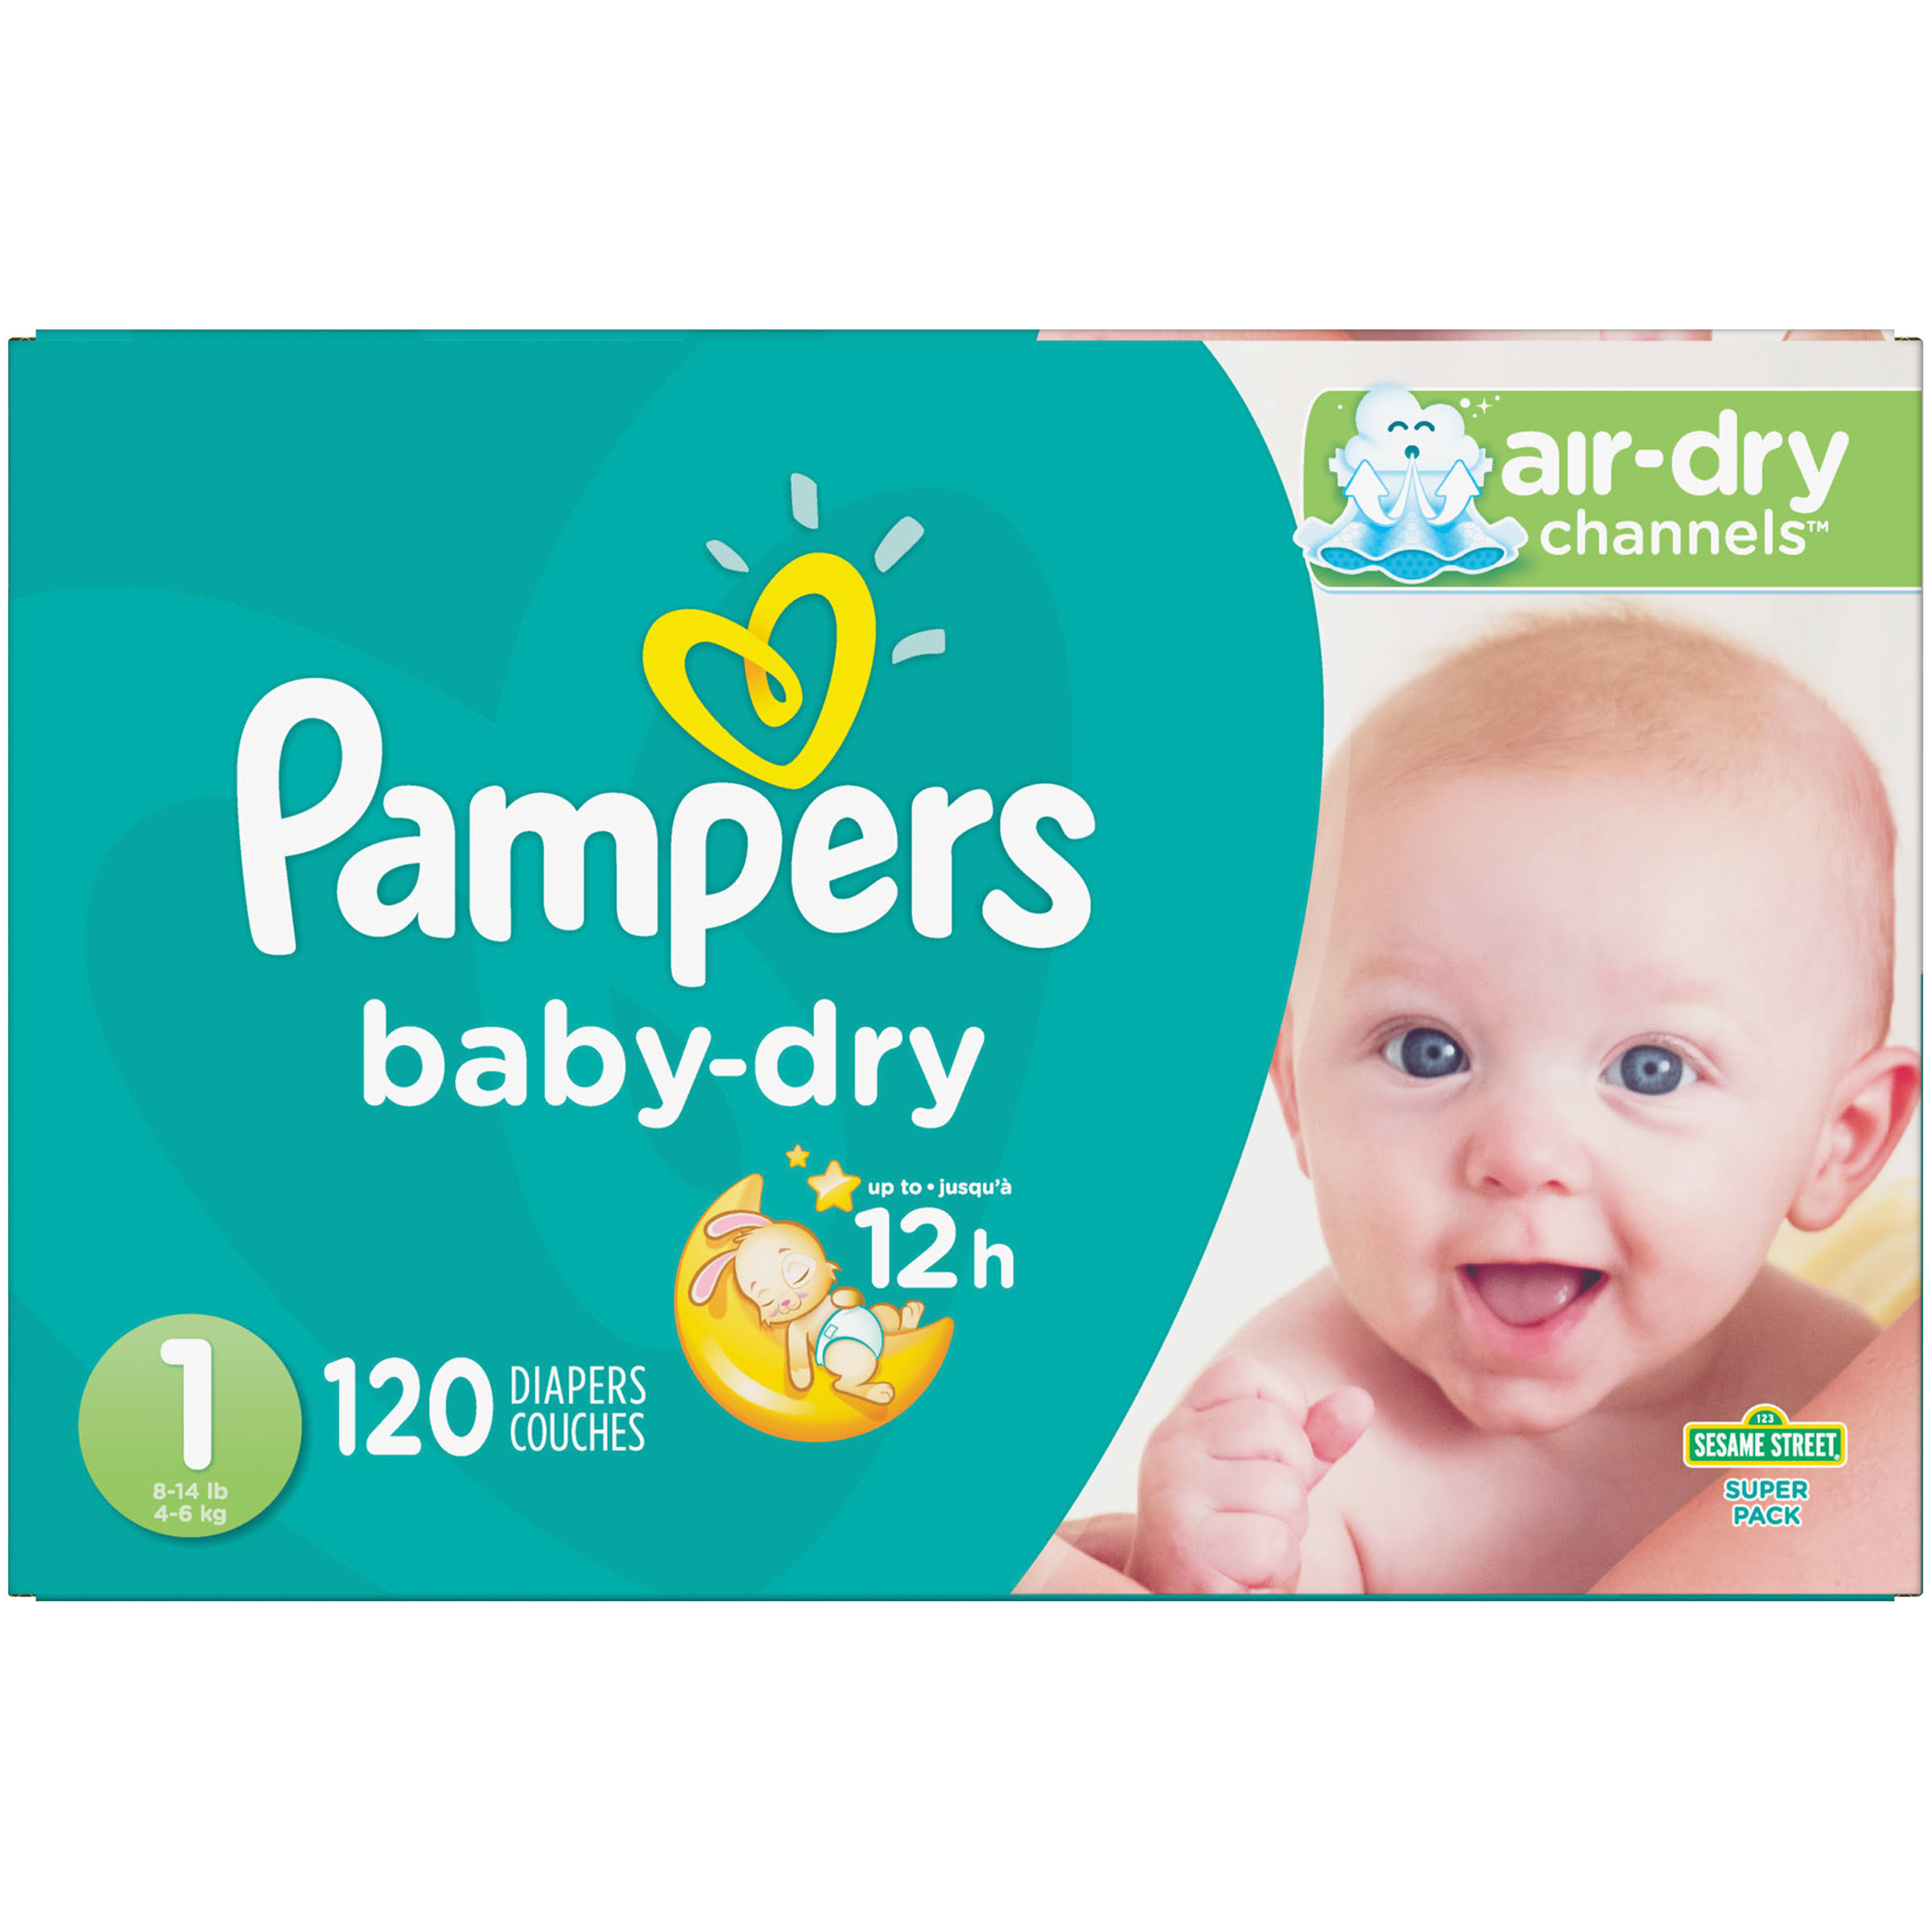 Pampers Baby Dry Diapers - 120 Pack